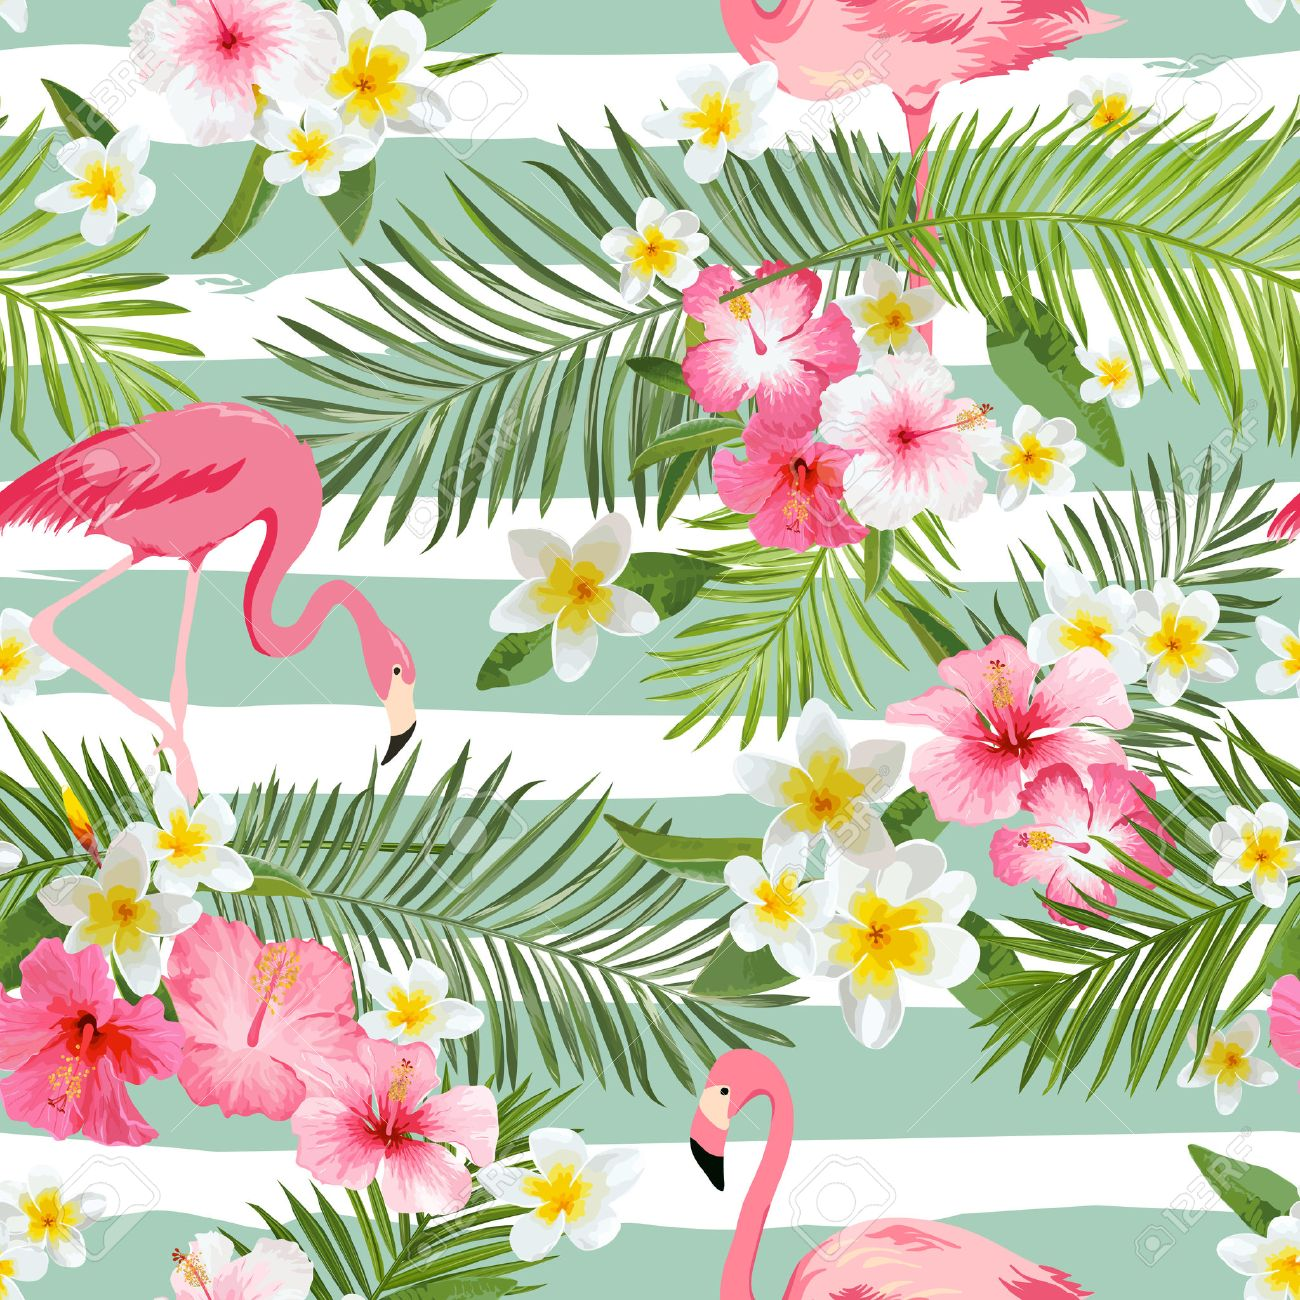 Flamingo Background. Tropical Flowers Background. Vintage Seamless Pattern. Vector Background. - 54616819